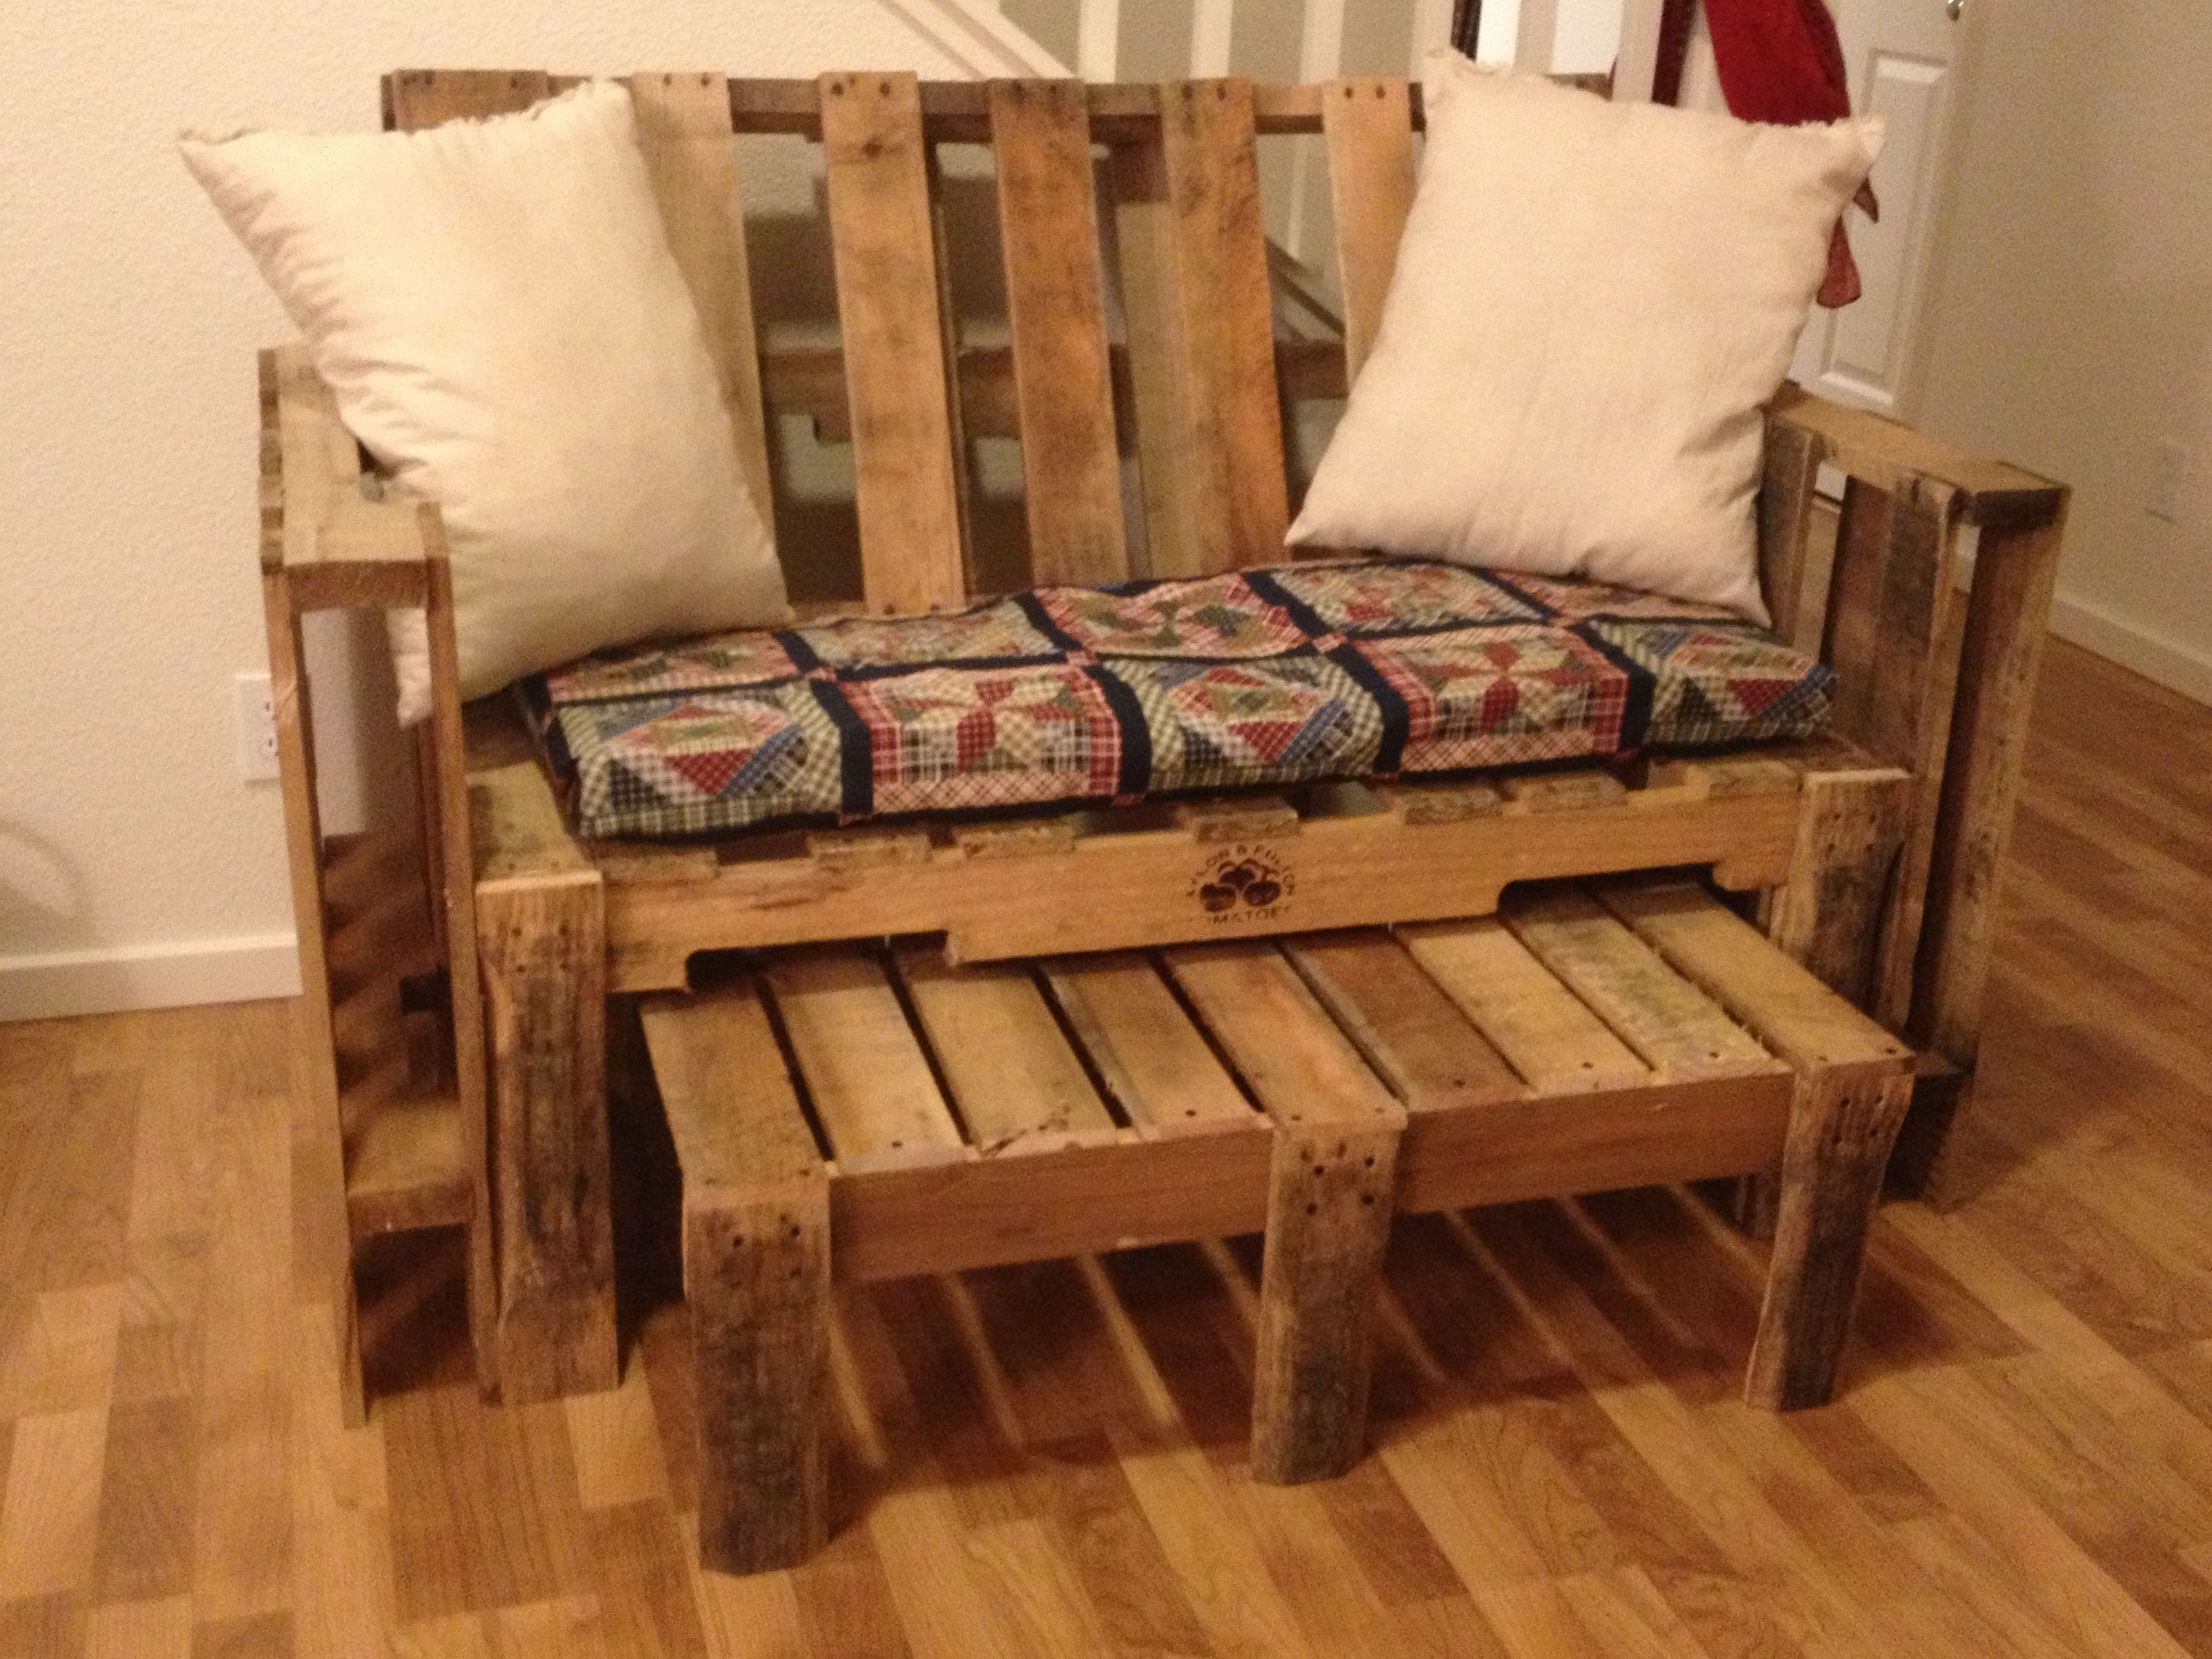 Our pallet couch with homemade cushions #palletcouch | No ...